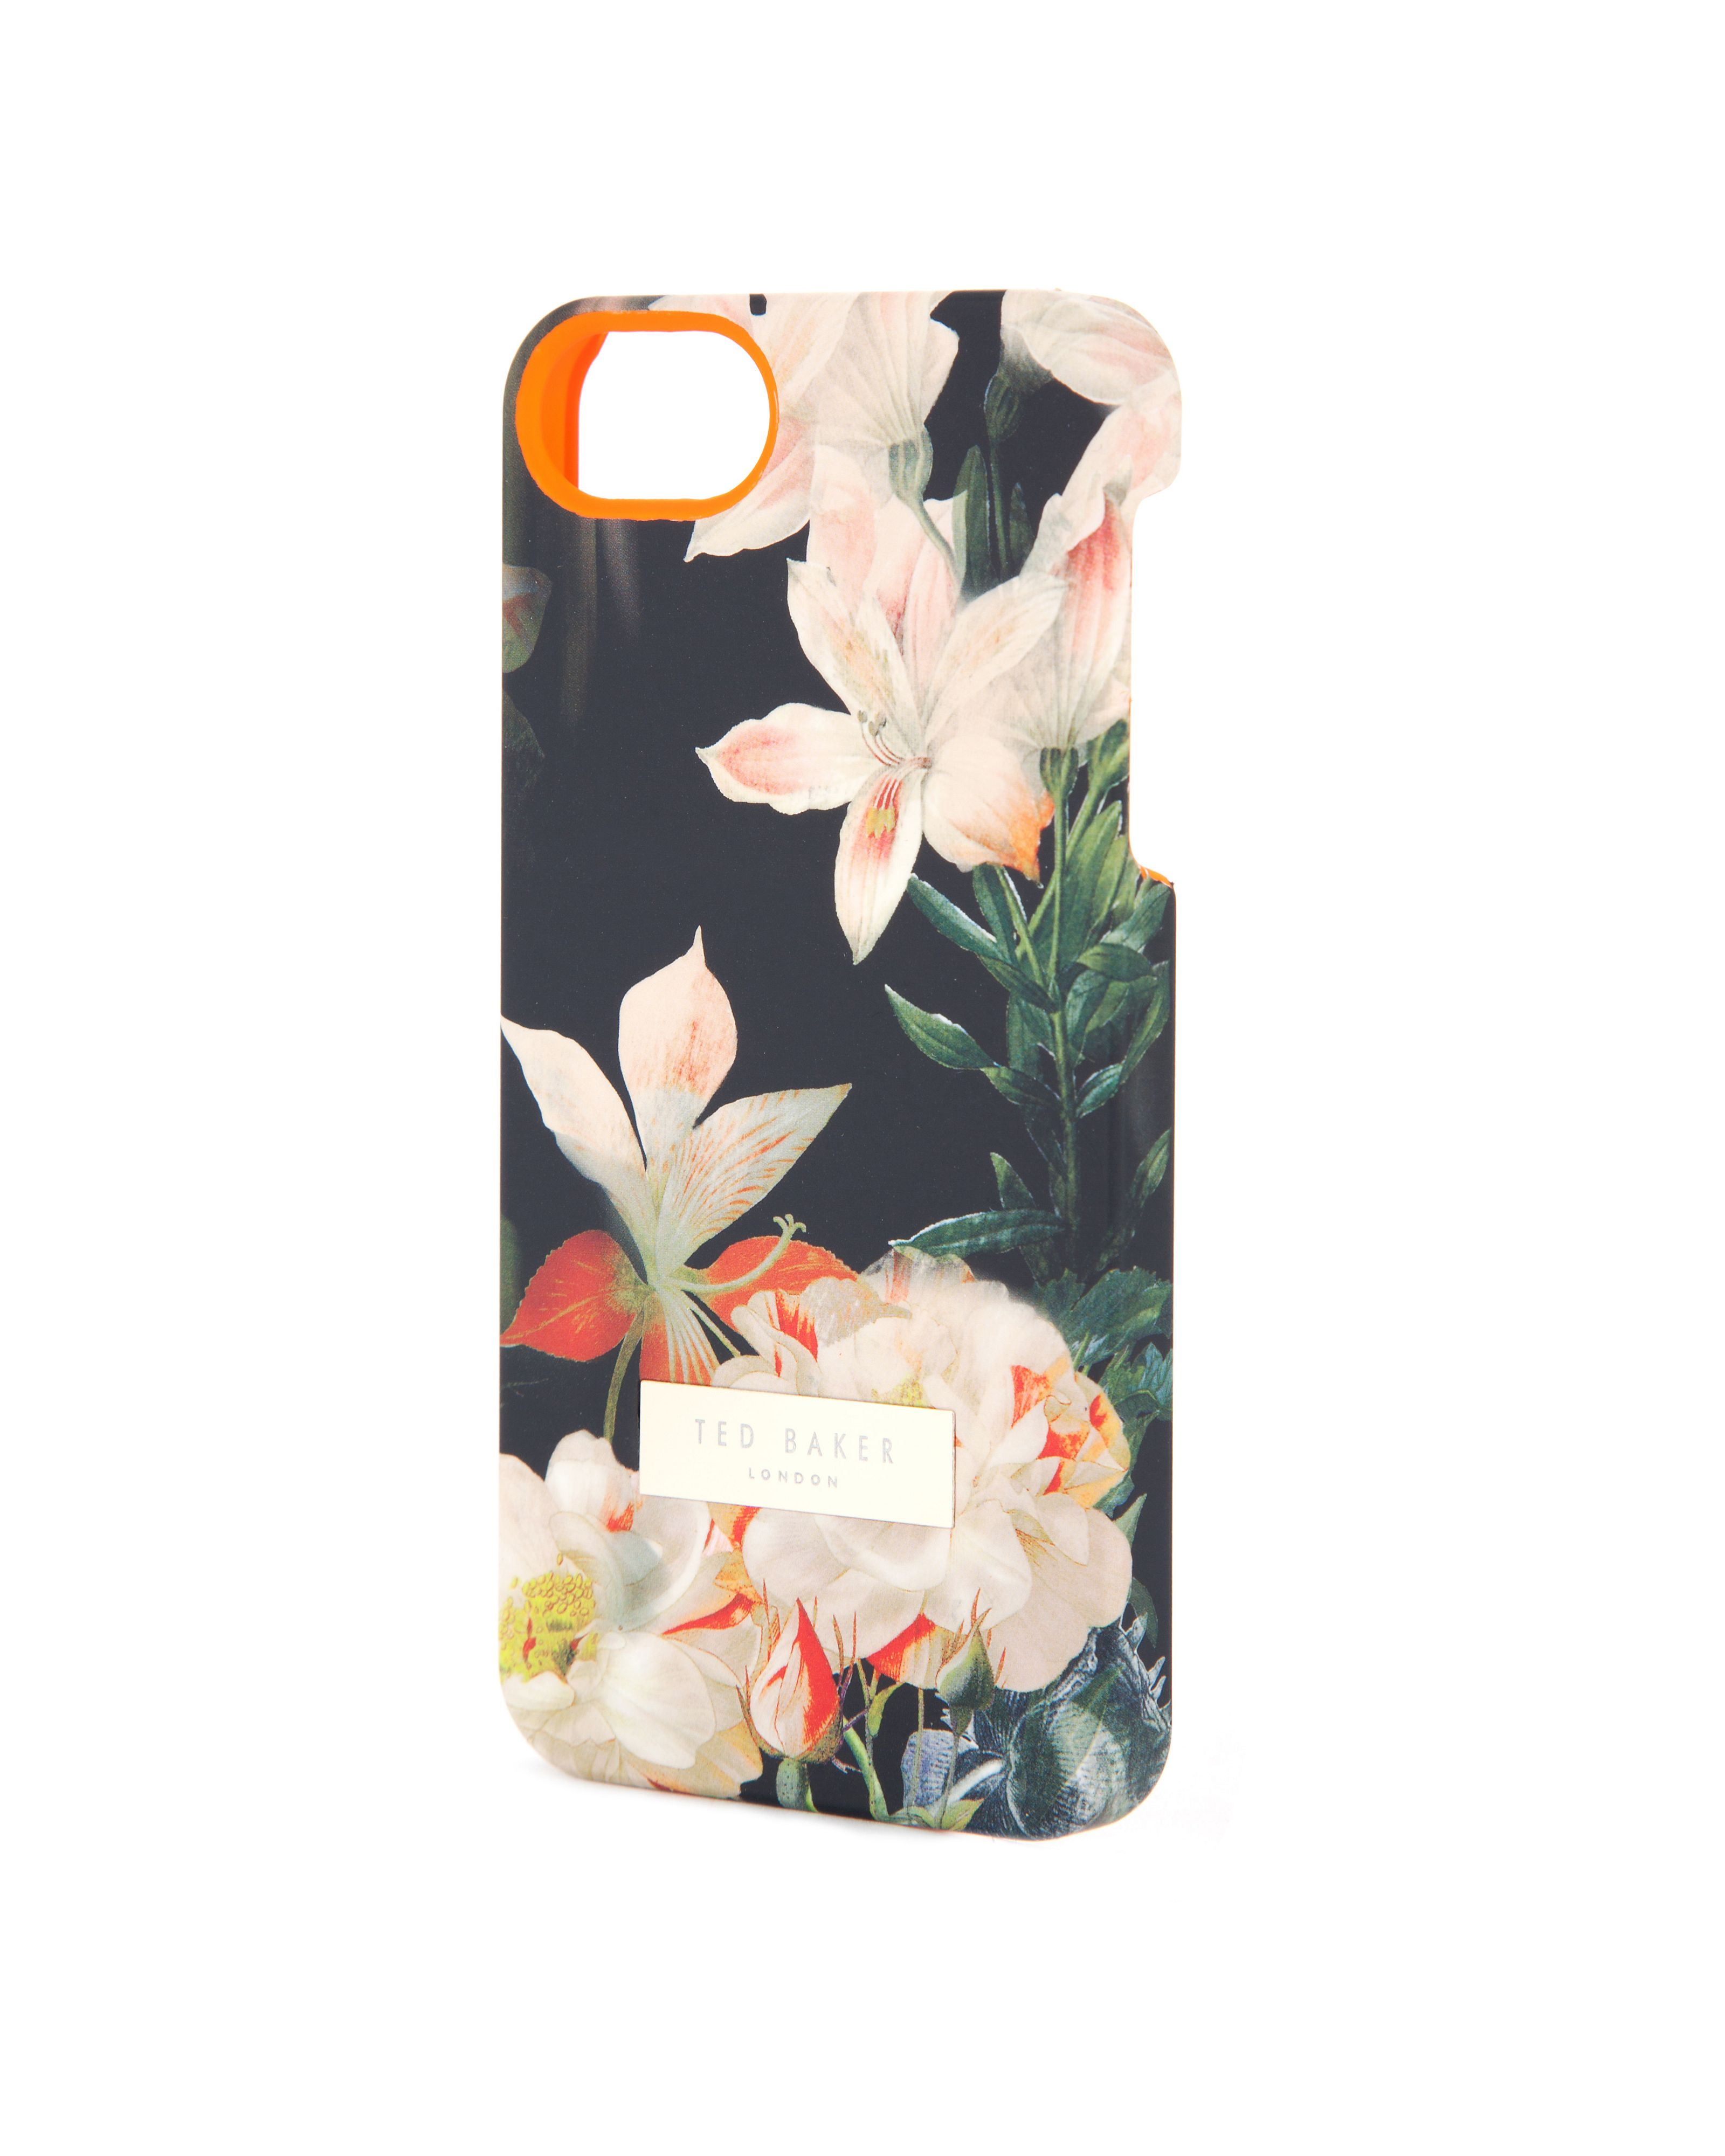 Salso opulent bloom iphone case